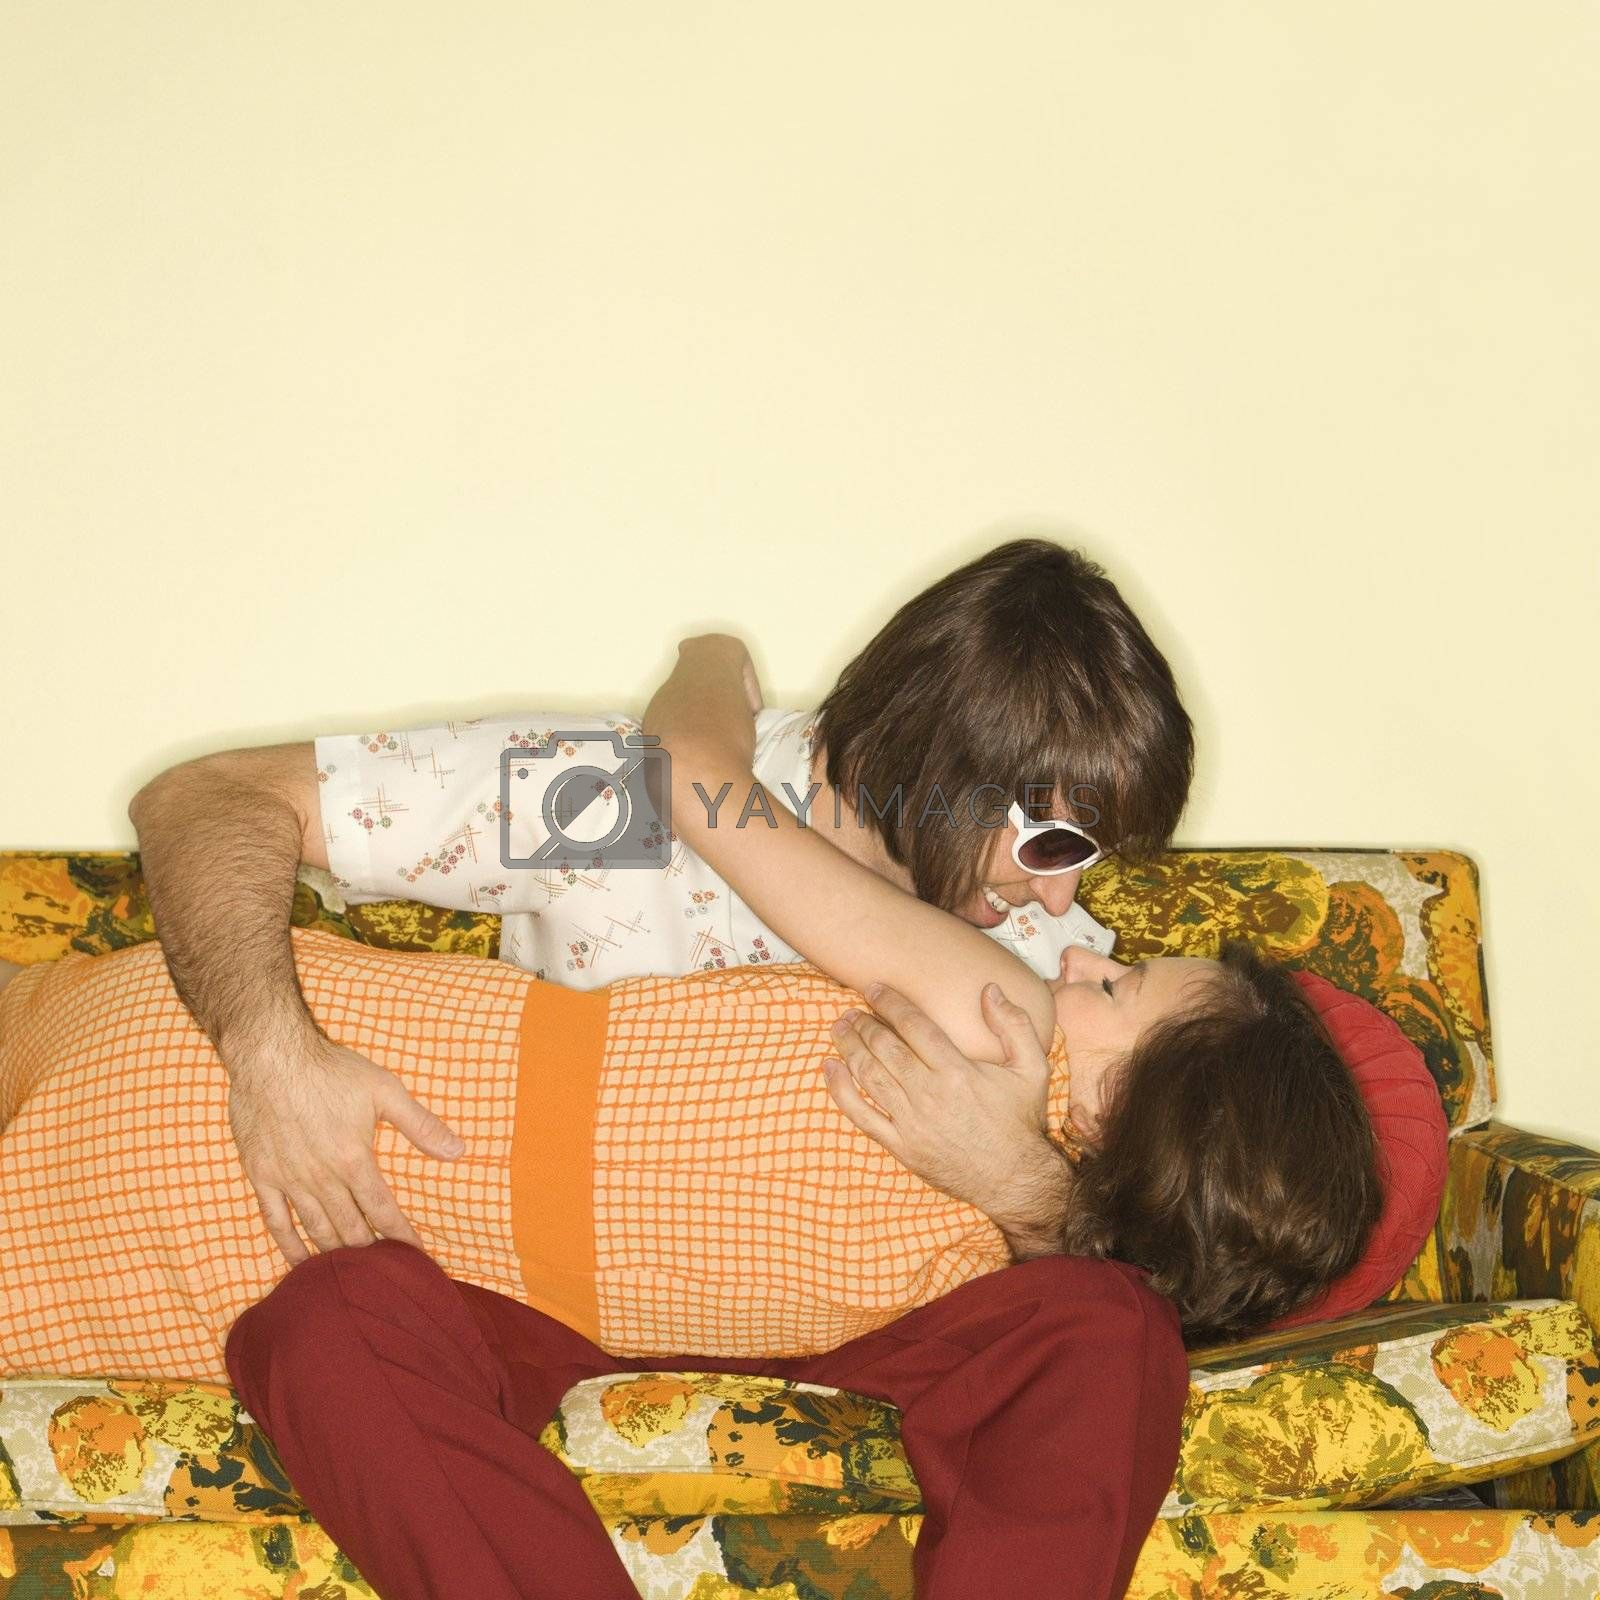 Caucasian mid-adult couple smiling and embracing on colorful retro sofa.